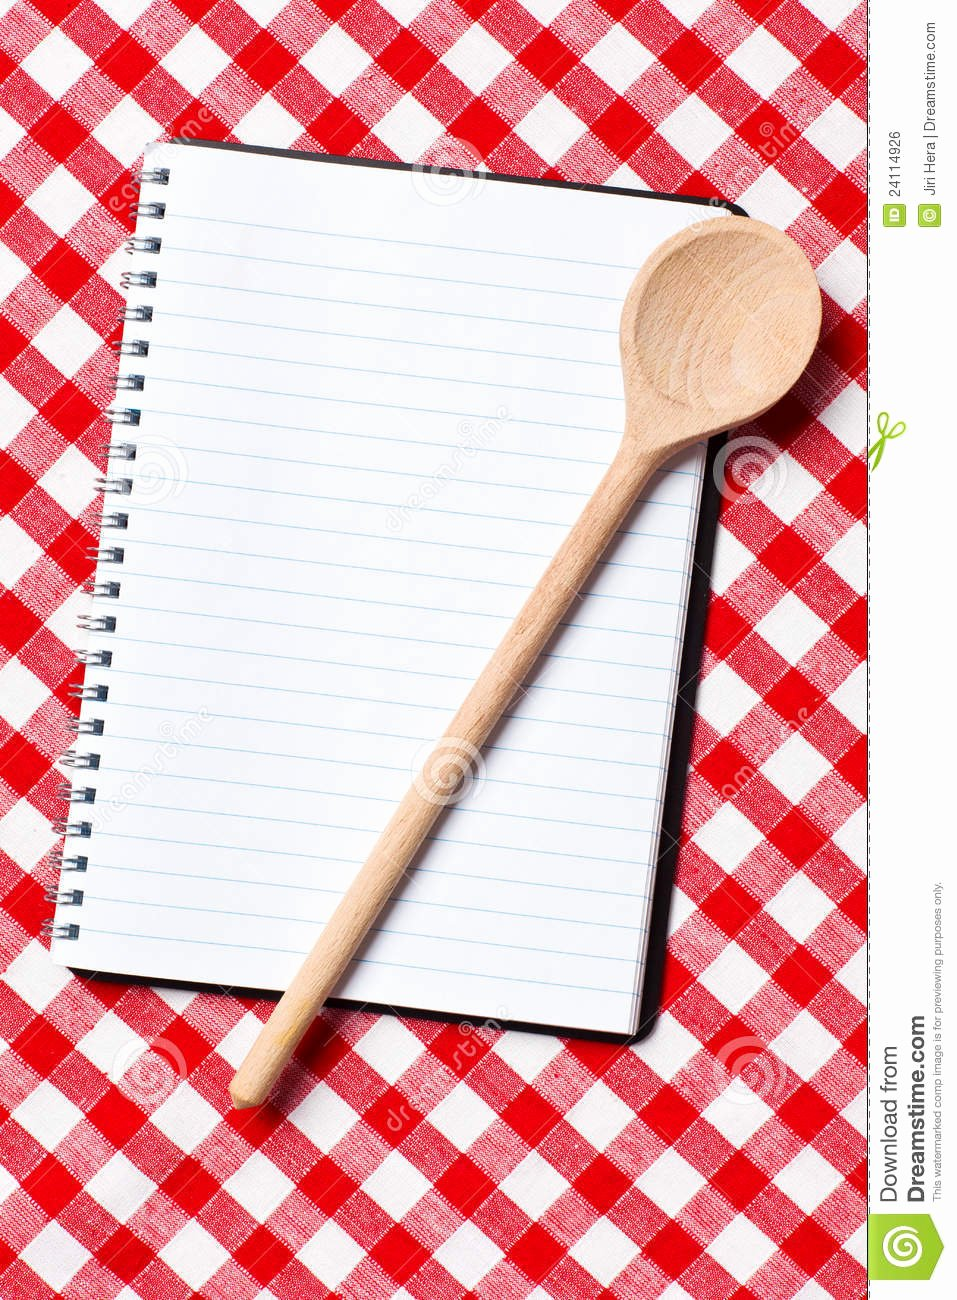 Recipe Book Cover Template New Blank Recipe Book Stock Photo Image Of Blank Preparing